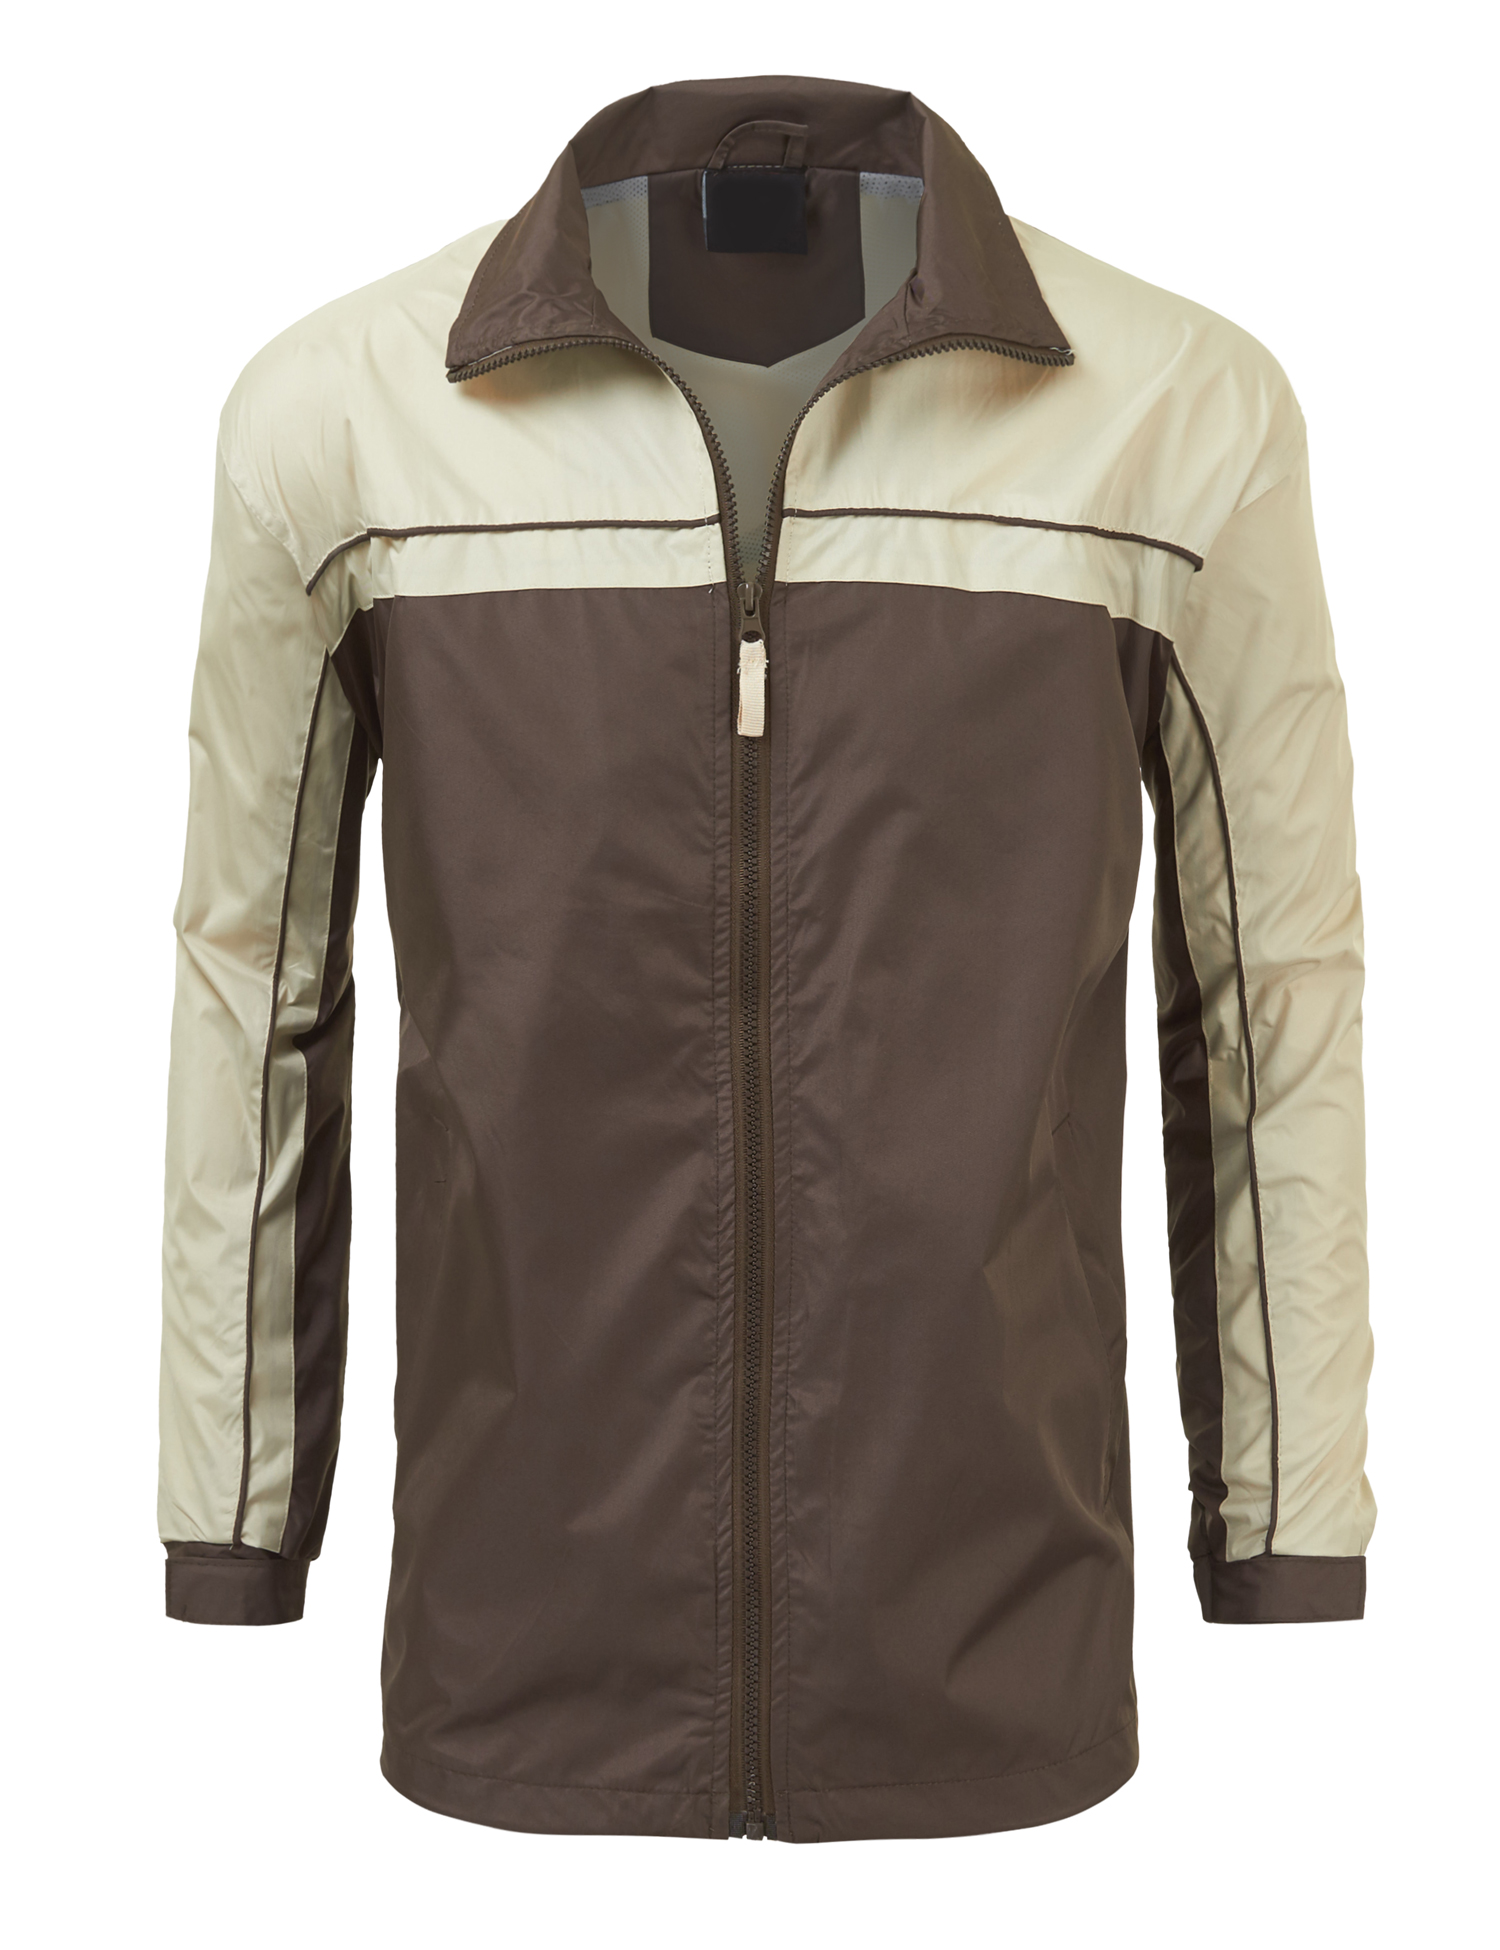 MBJ Mens Winter Active Jacket with Mesh Lining ( S - XXXL )